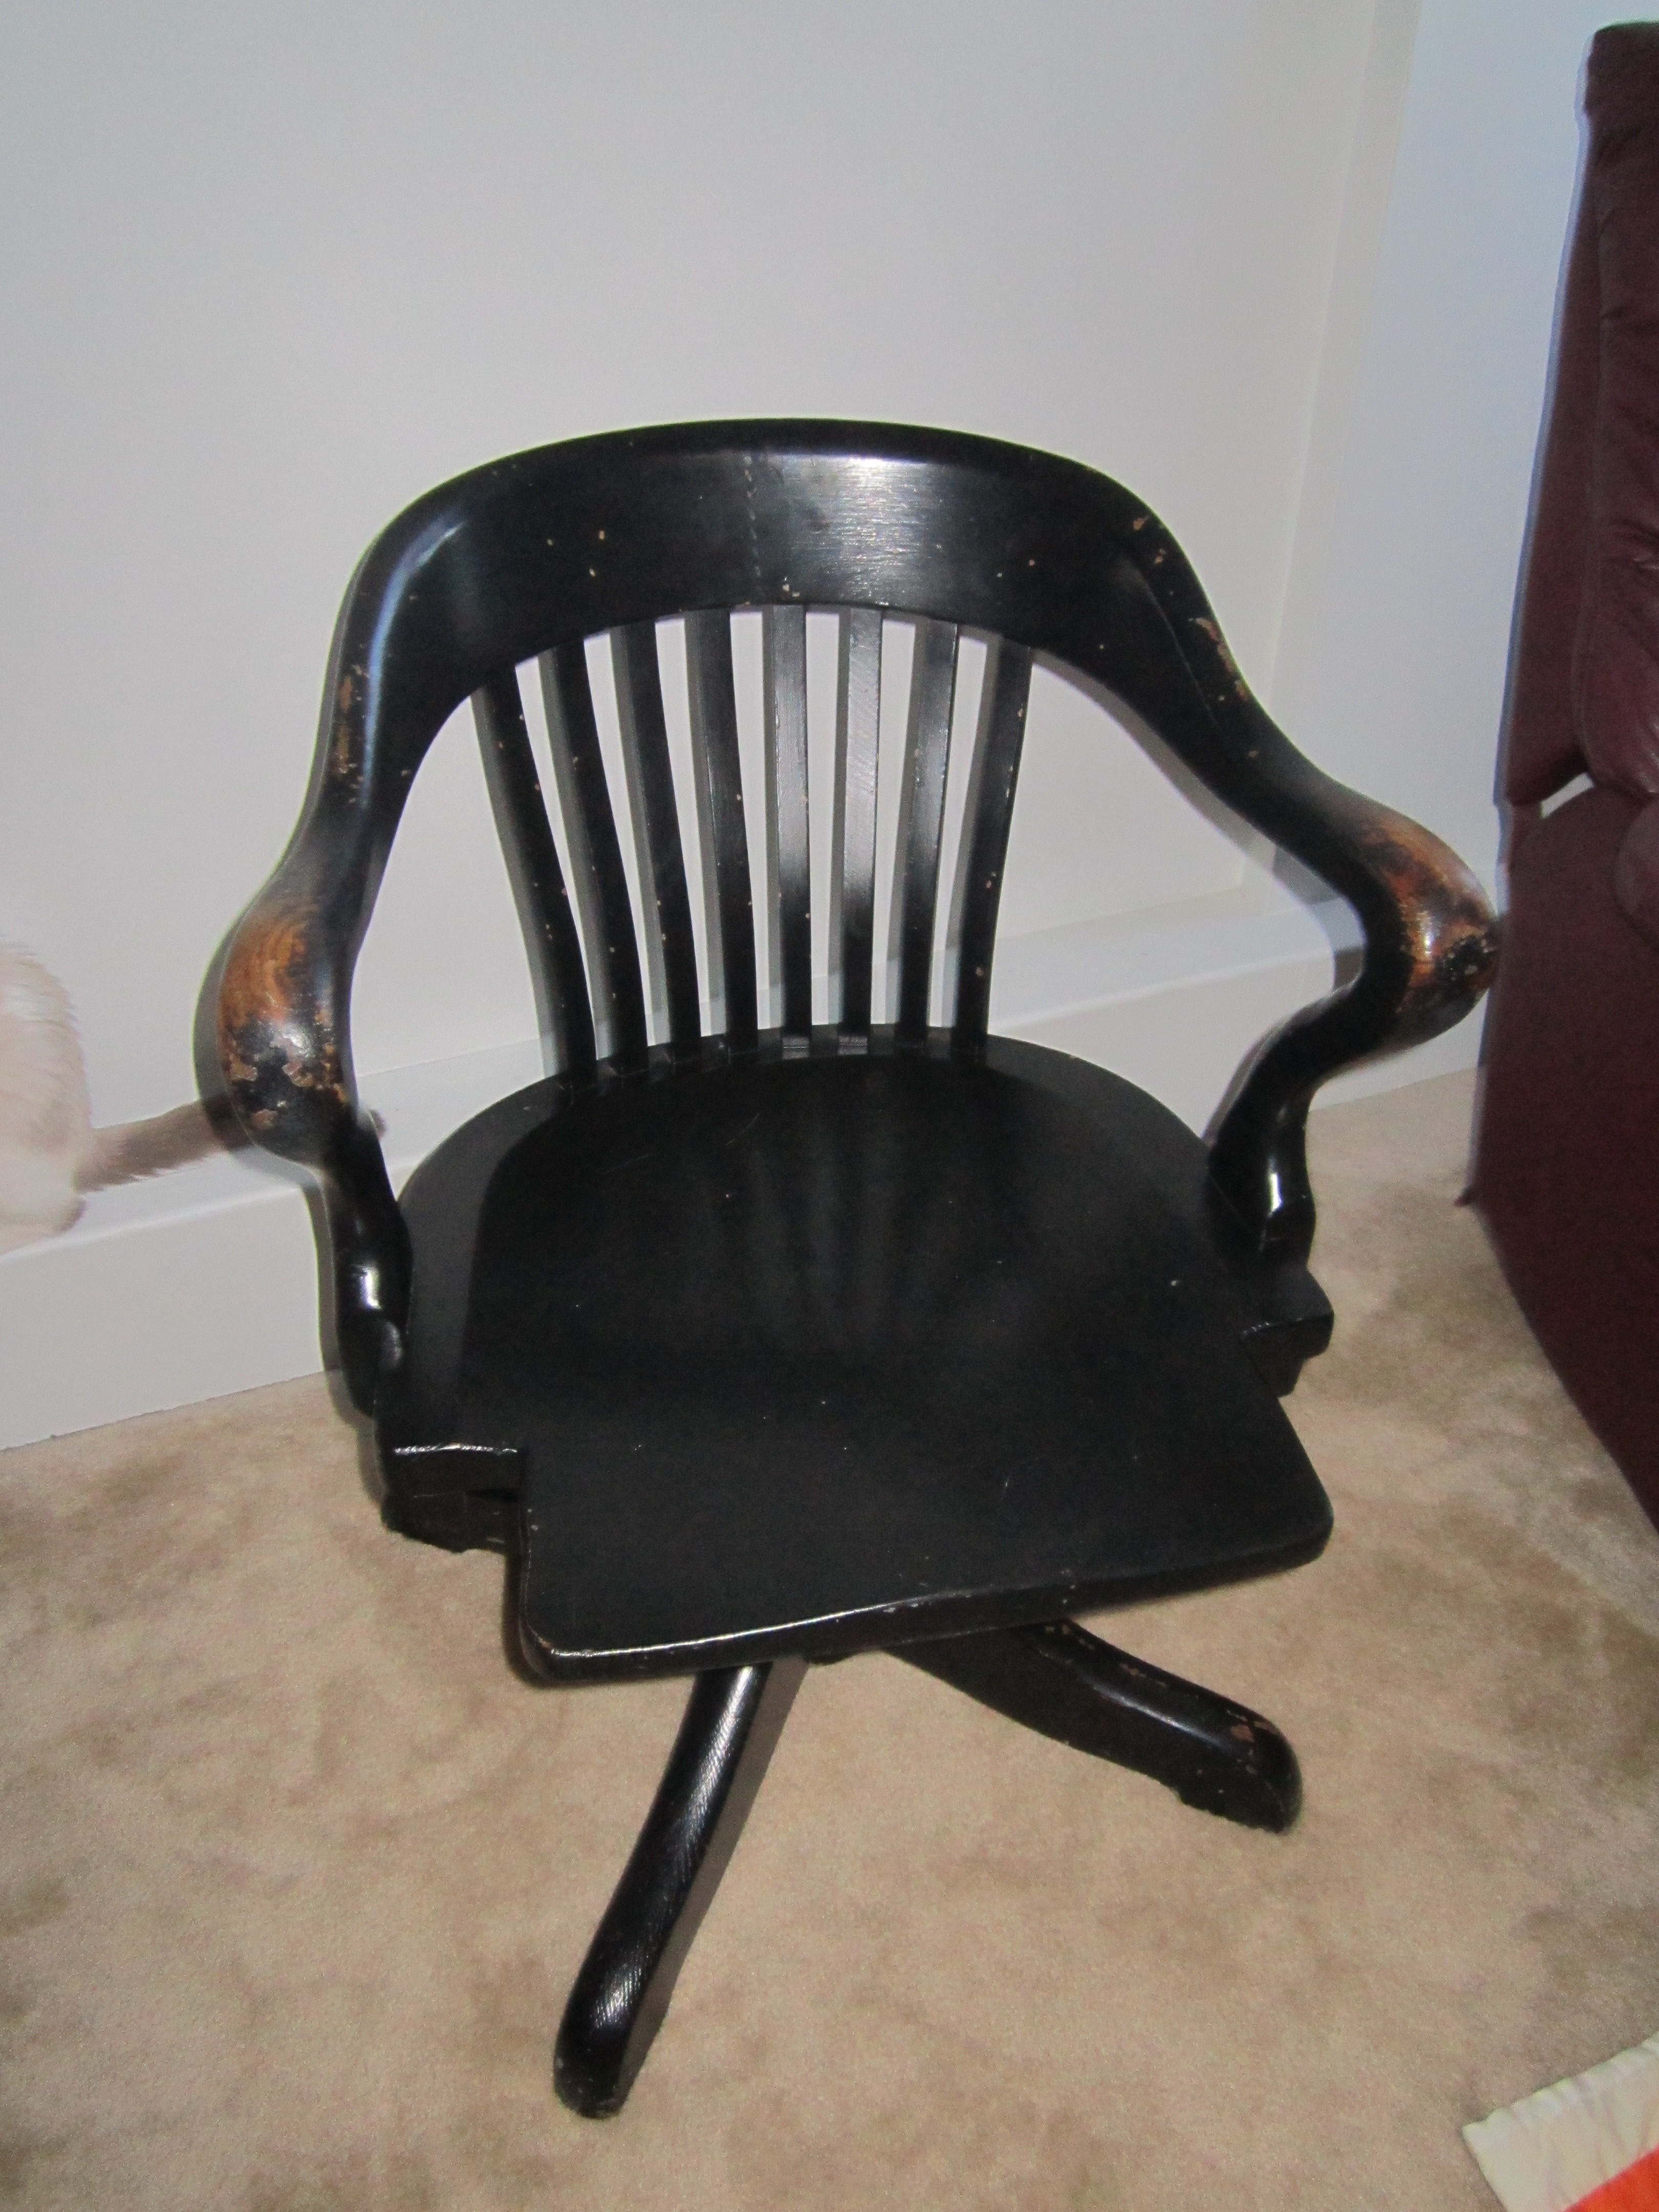 Find Of The Week Antique Desk Chair On The Side Of The